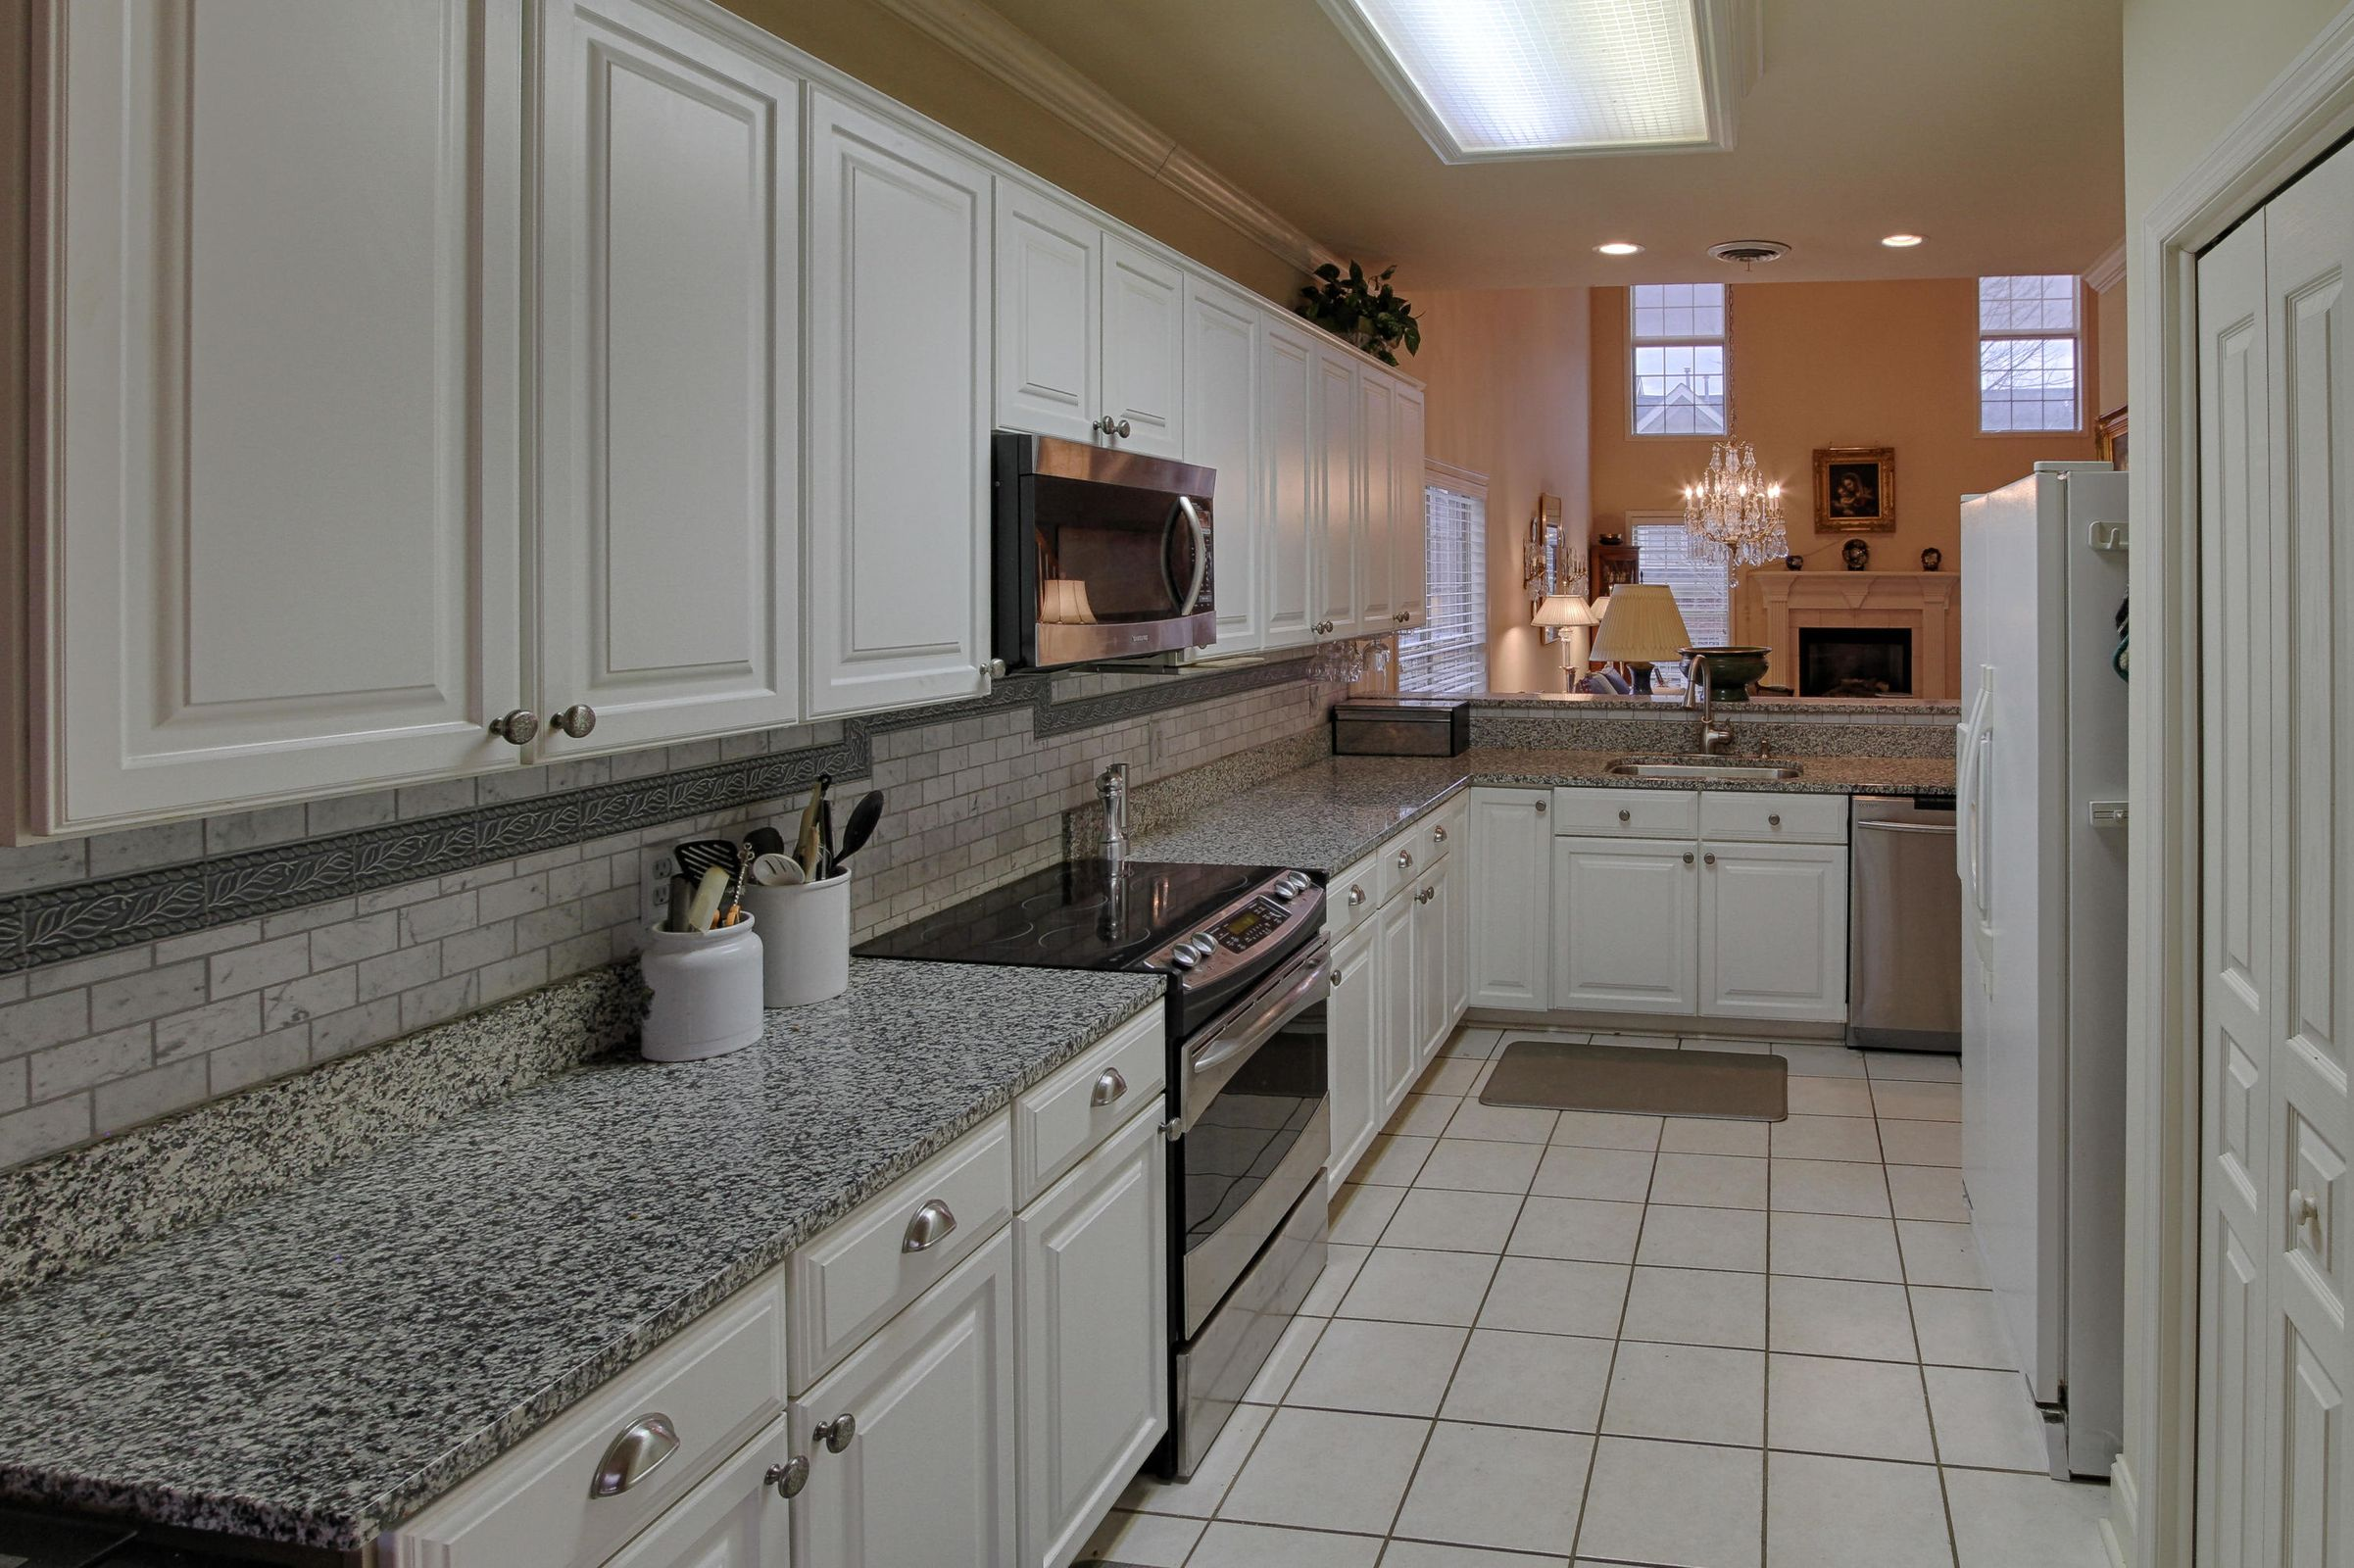 06 - Lovely kitchen with white cabinets